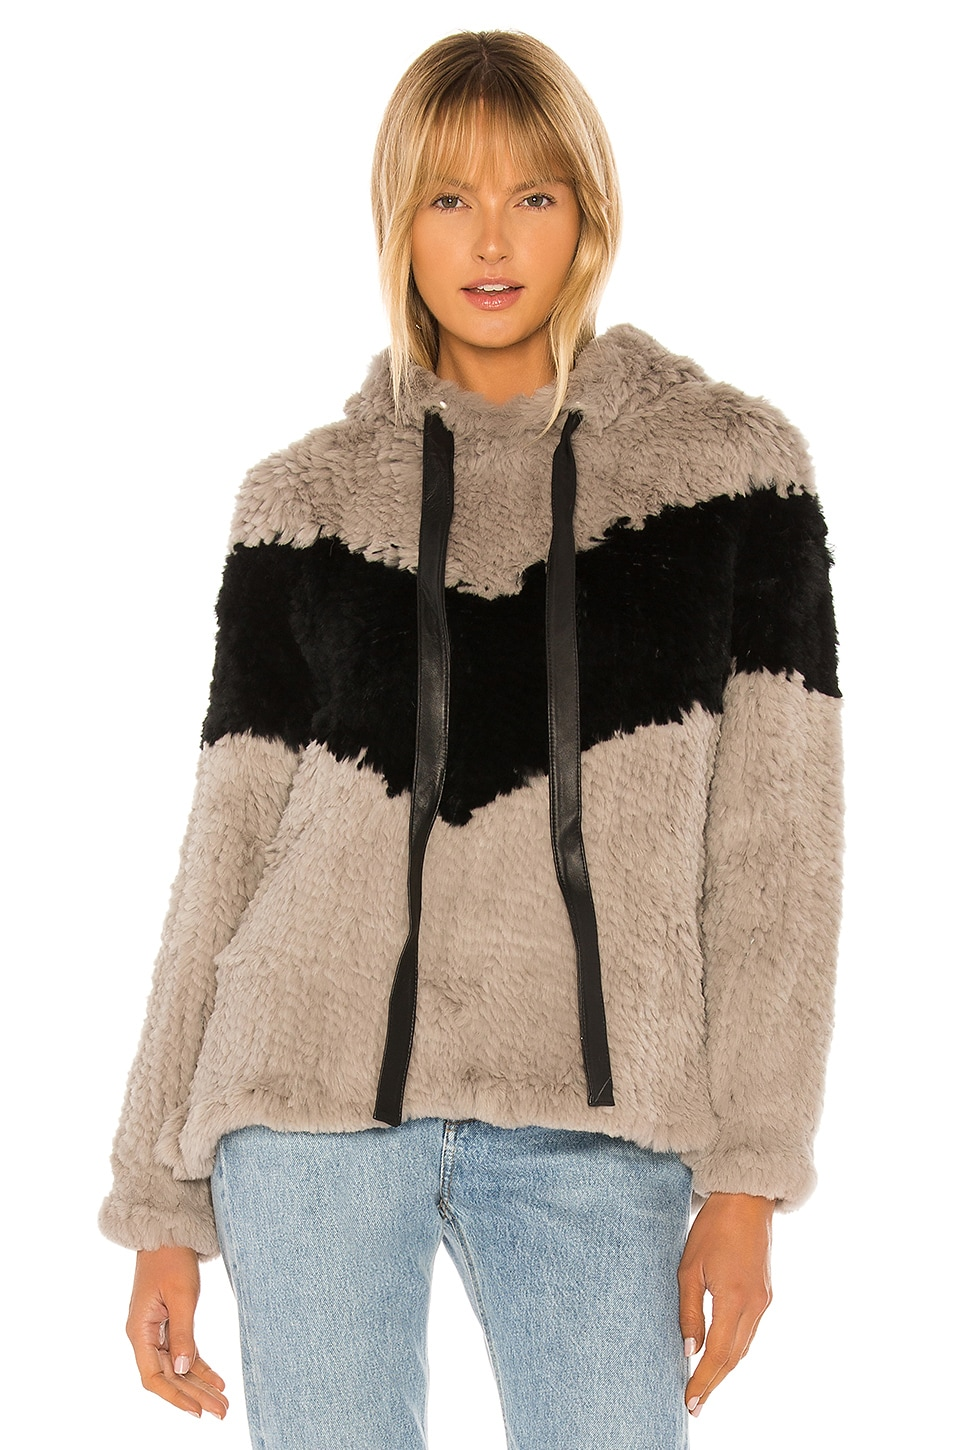 Adrienne Landau Knit Rabbit Fur Hoodie in Grey